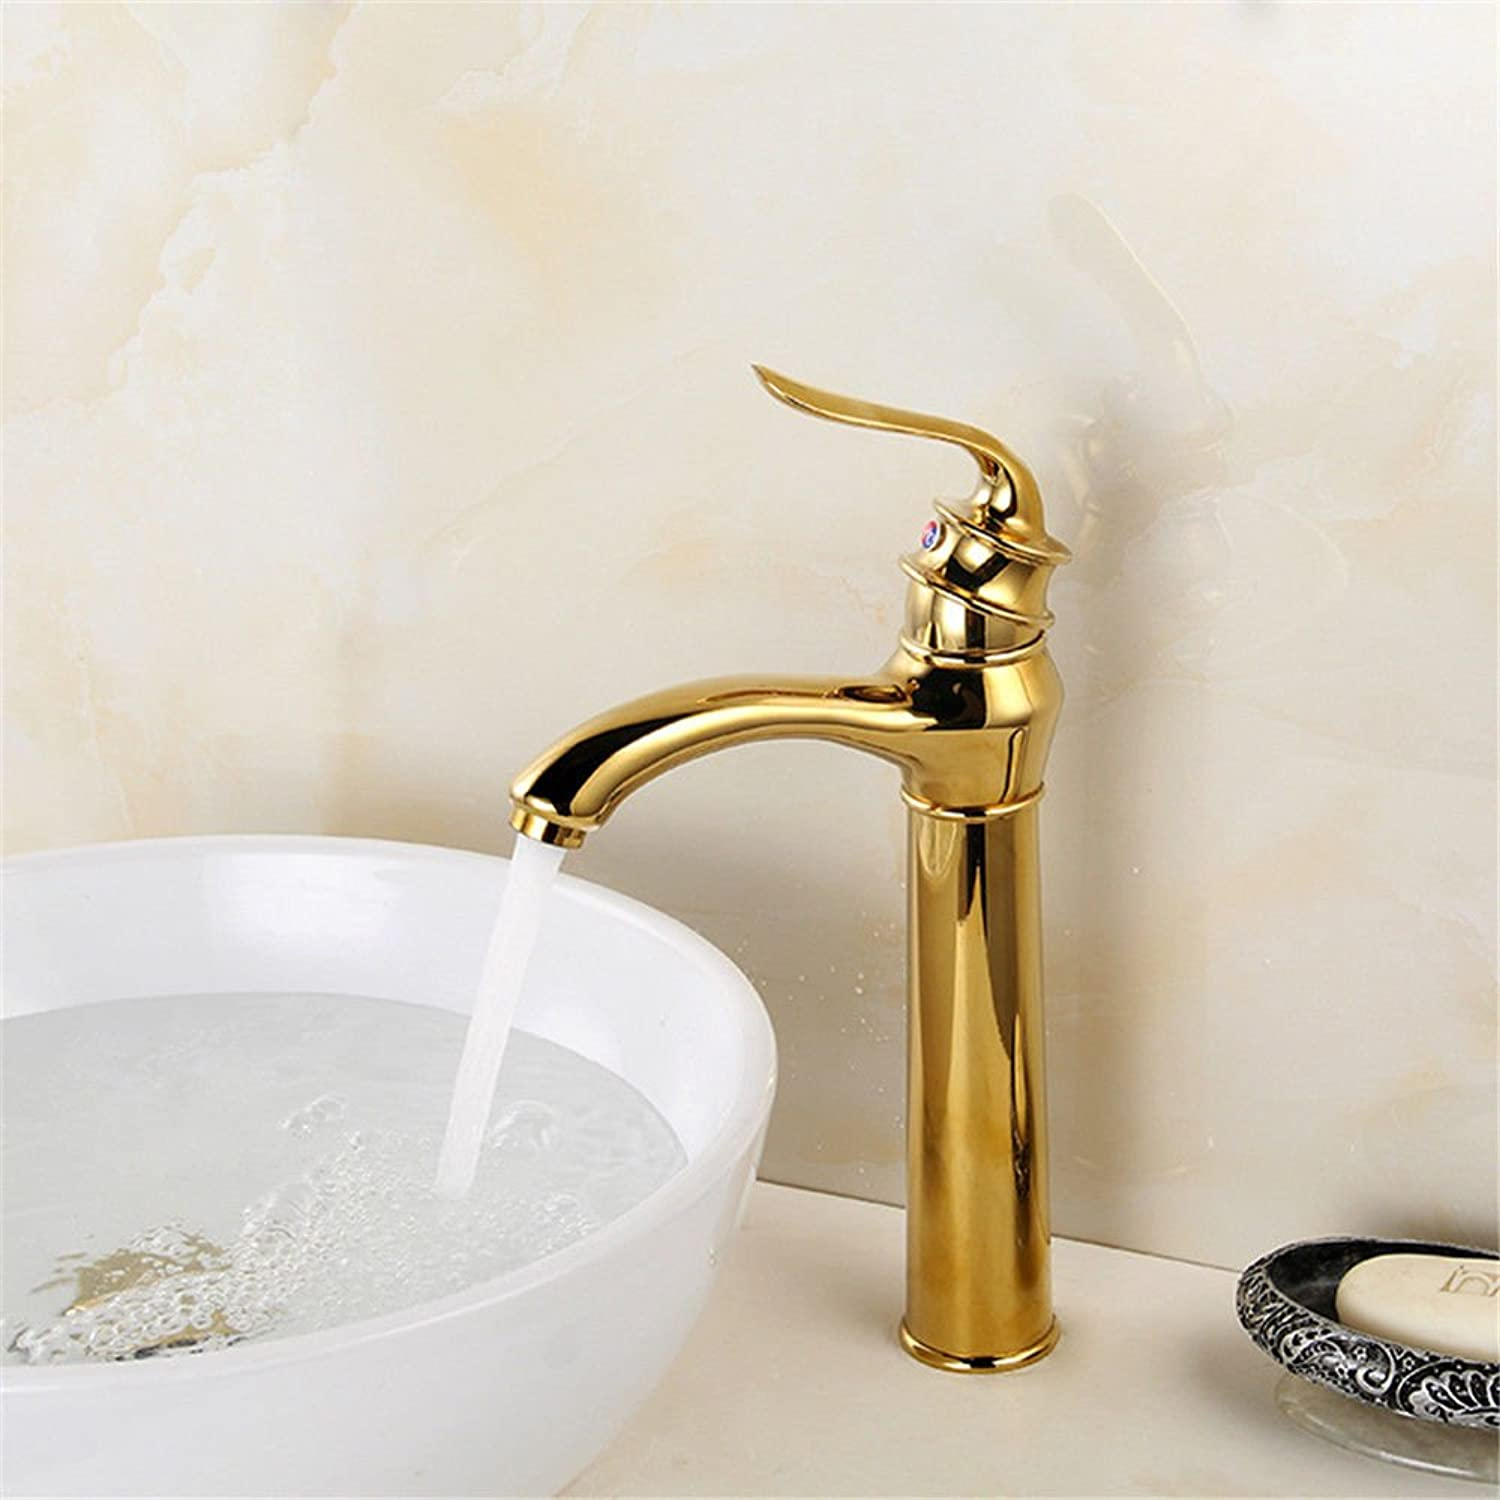 AQMMi Bathroom Sink Mixer Tap gold 1 Hole Single Lever Taps for Bathroom Sink